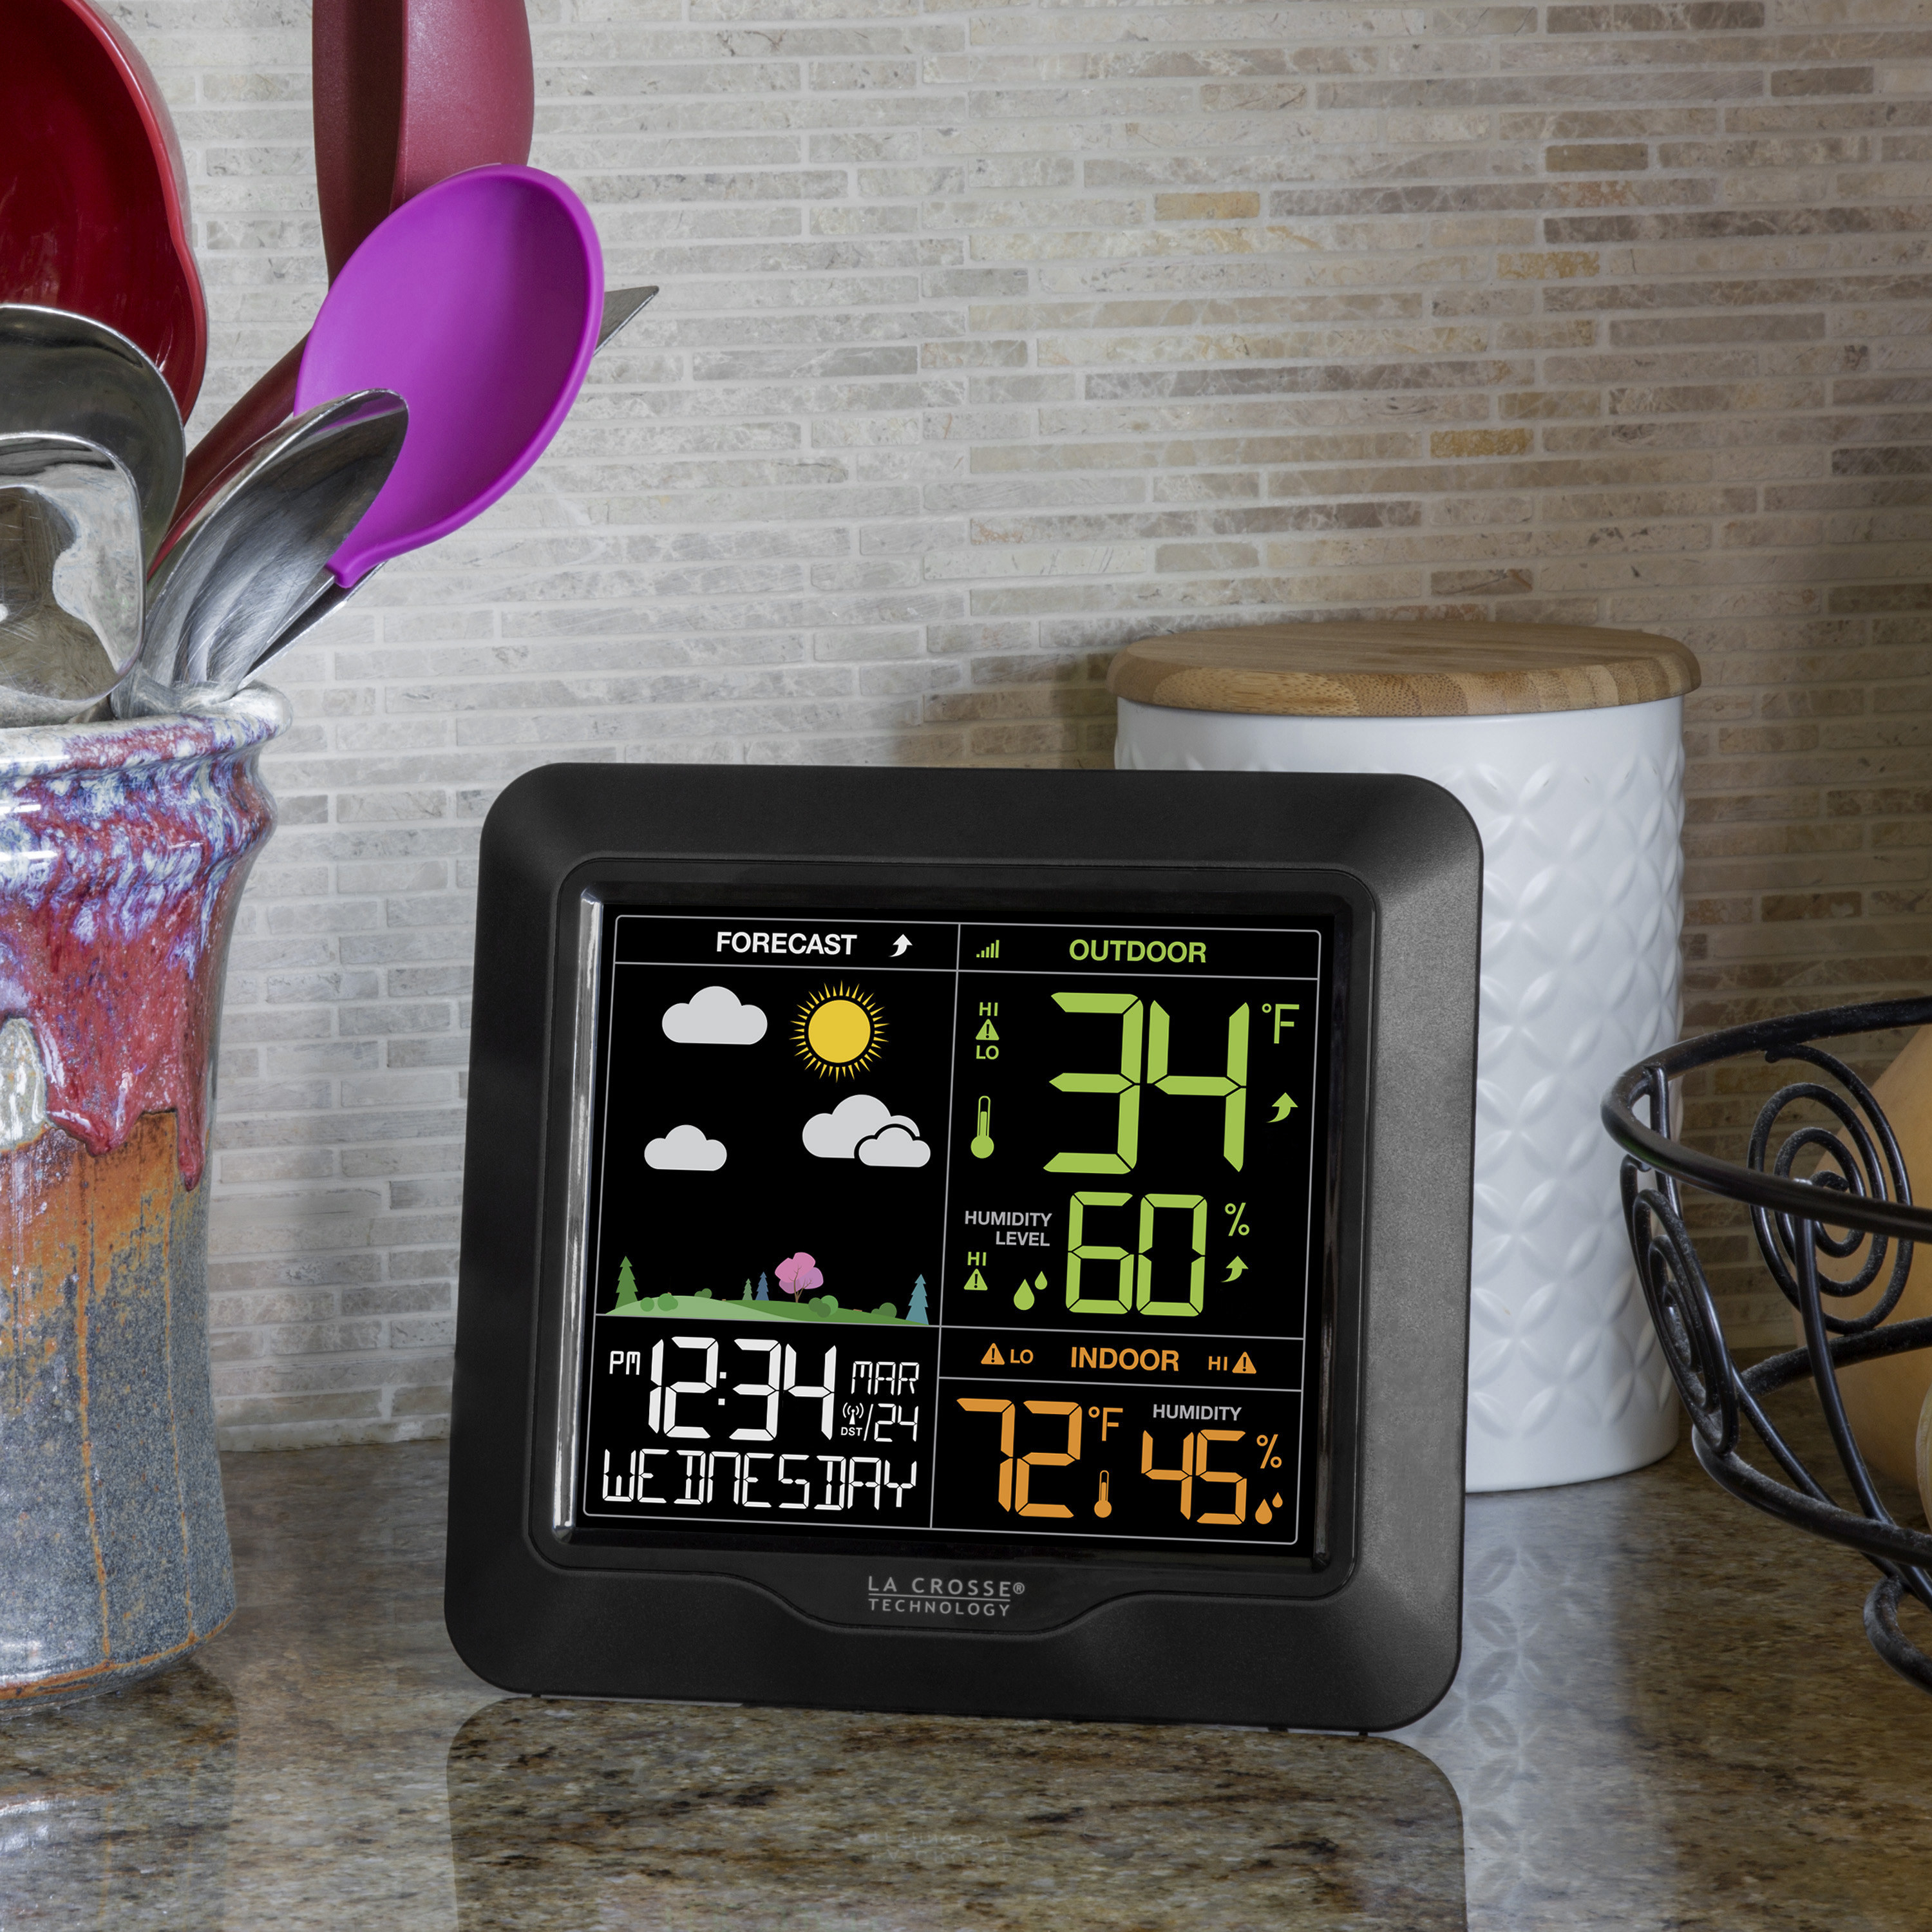 The weather monitor on a countertop